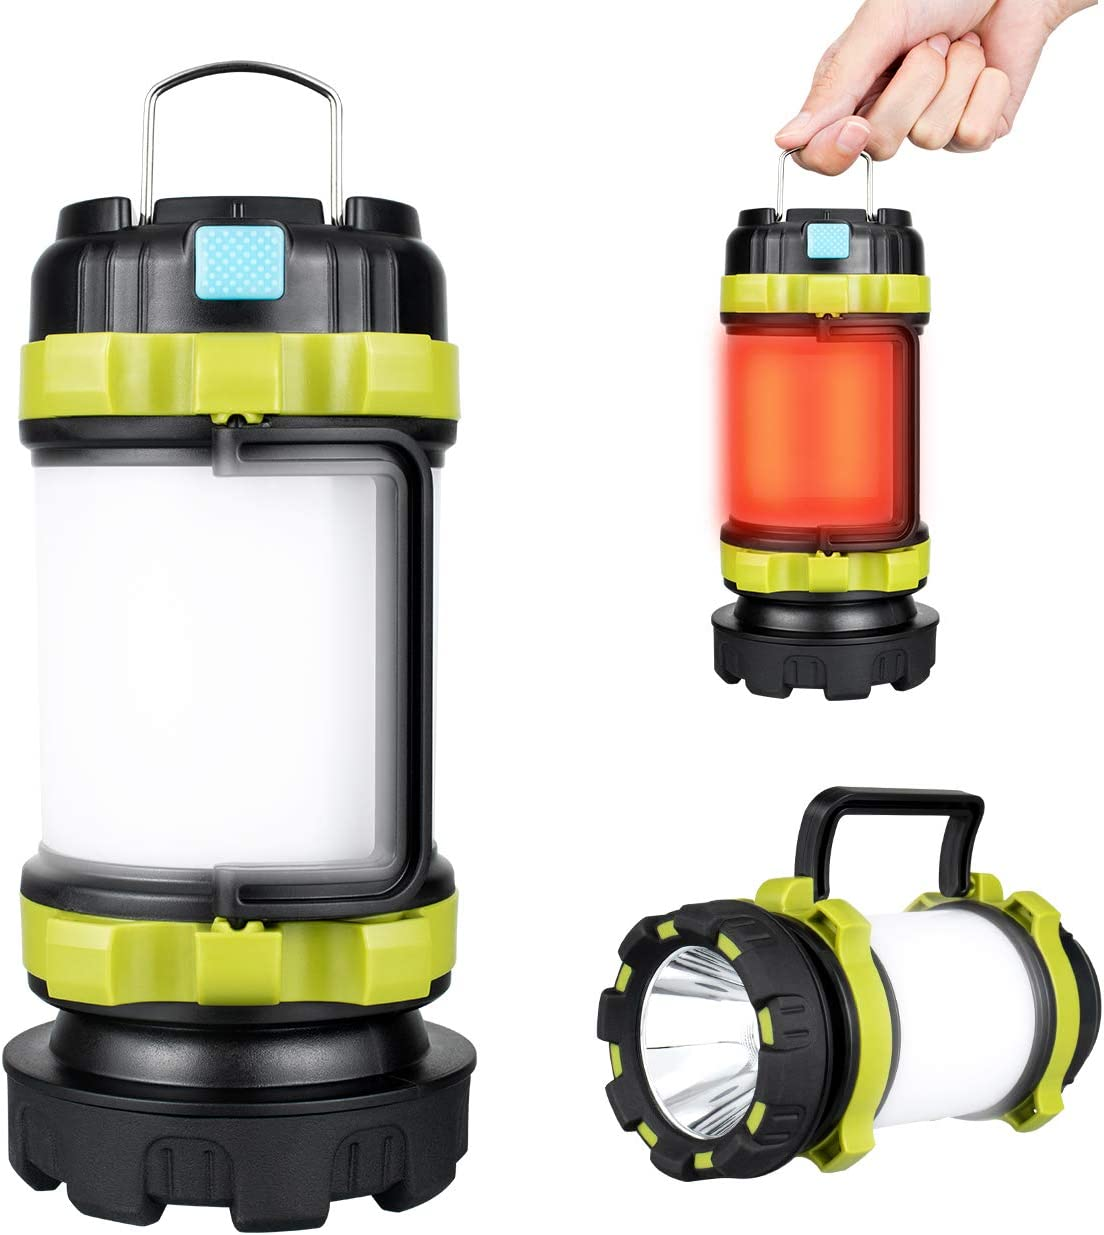 Perfect for Camping Light Hiking Emergency or Home Using Rechargeable Camping Lantern USB Charging Cable Included 6 Modes IPX4 Waterproof LED Lantern Flashlight 4000mAh Power Bank 1 PACK